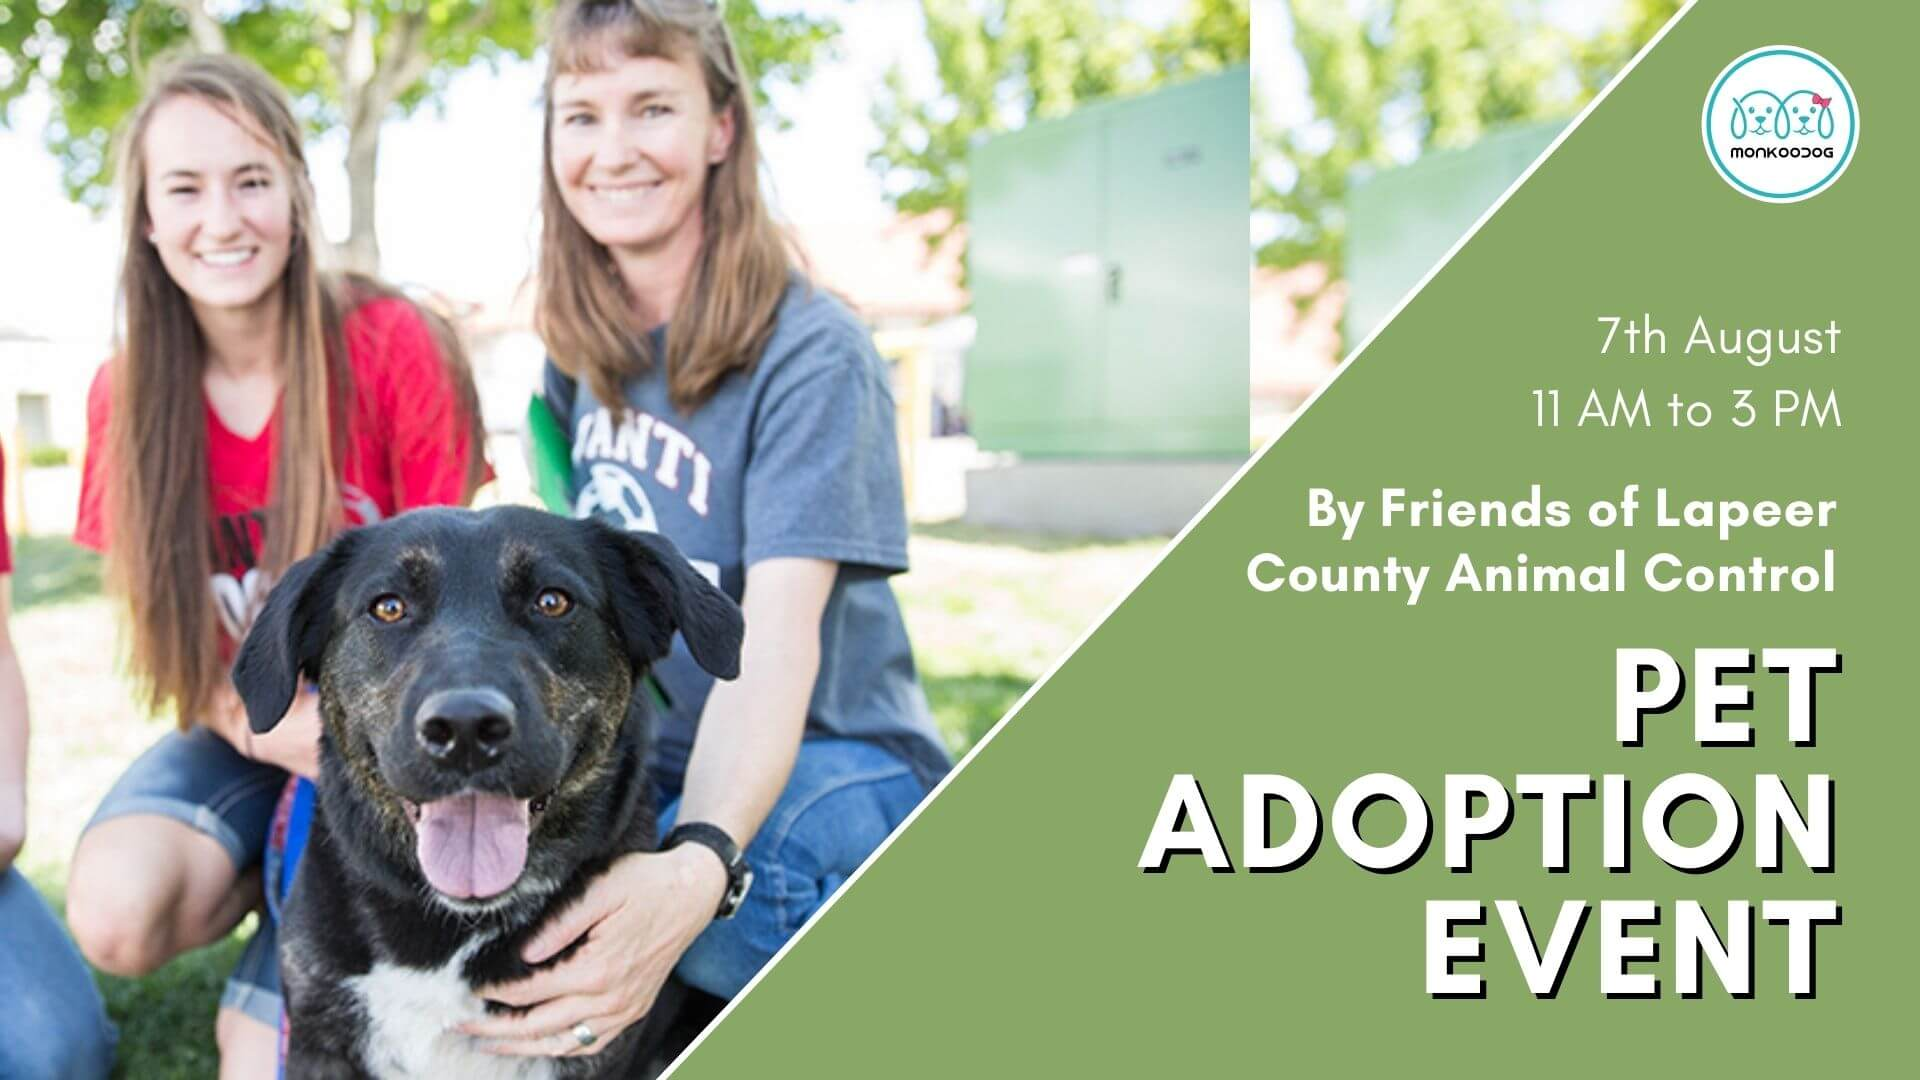 Upcoming Pet Event Pet Adoption Event By Friends of Lapeer County Animal Control